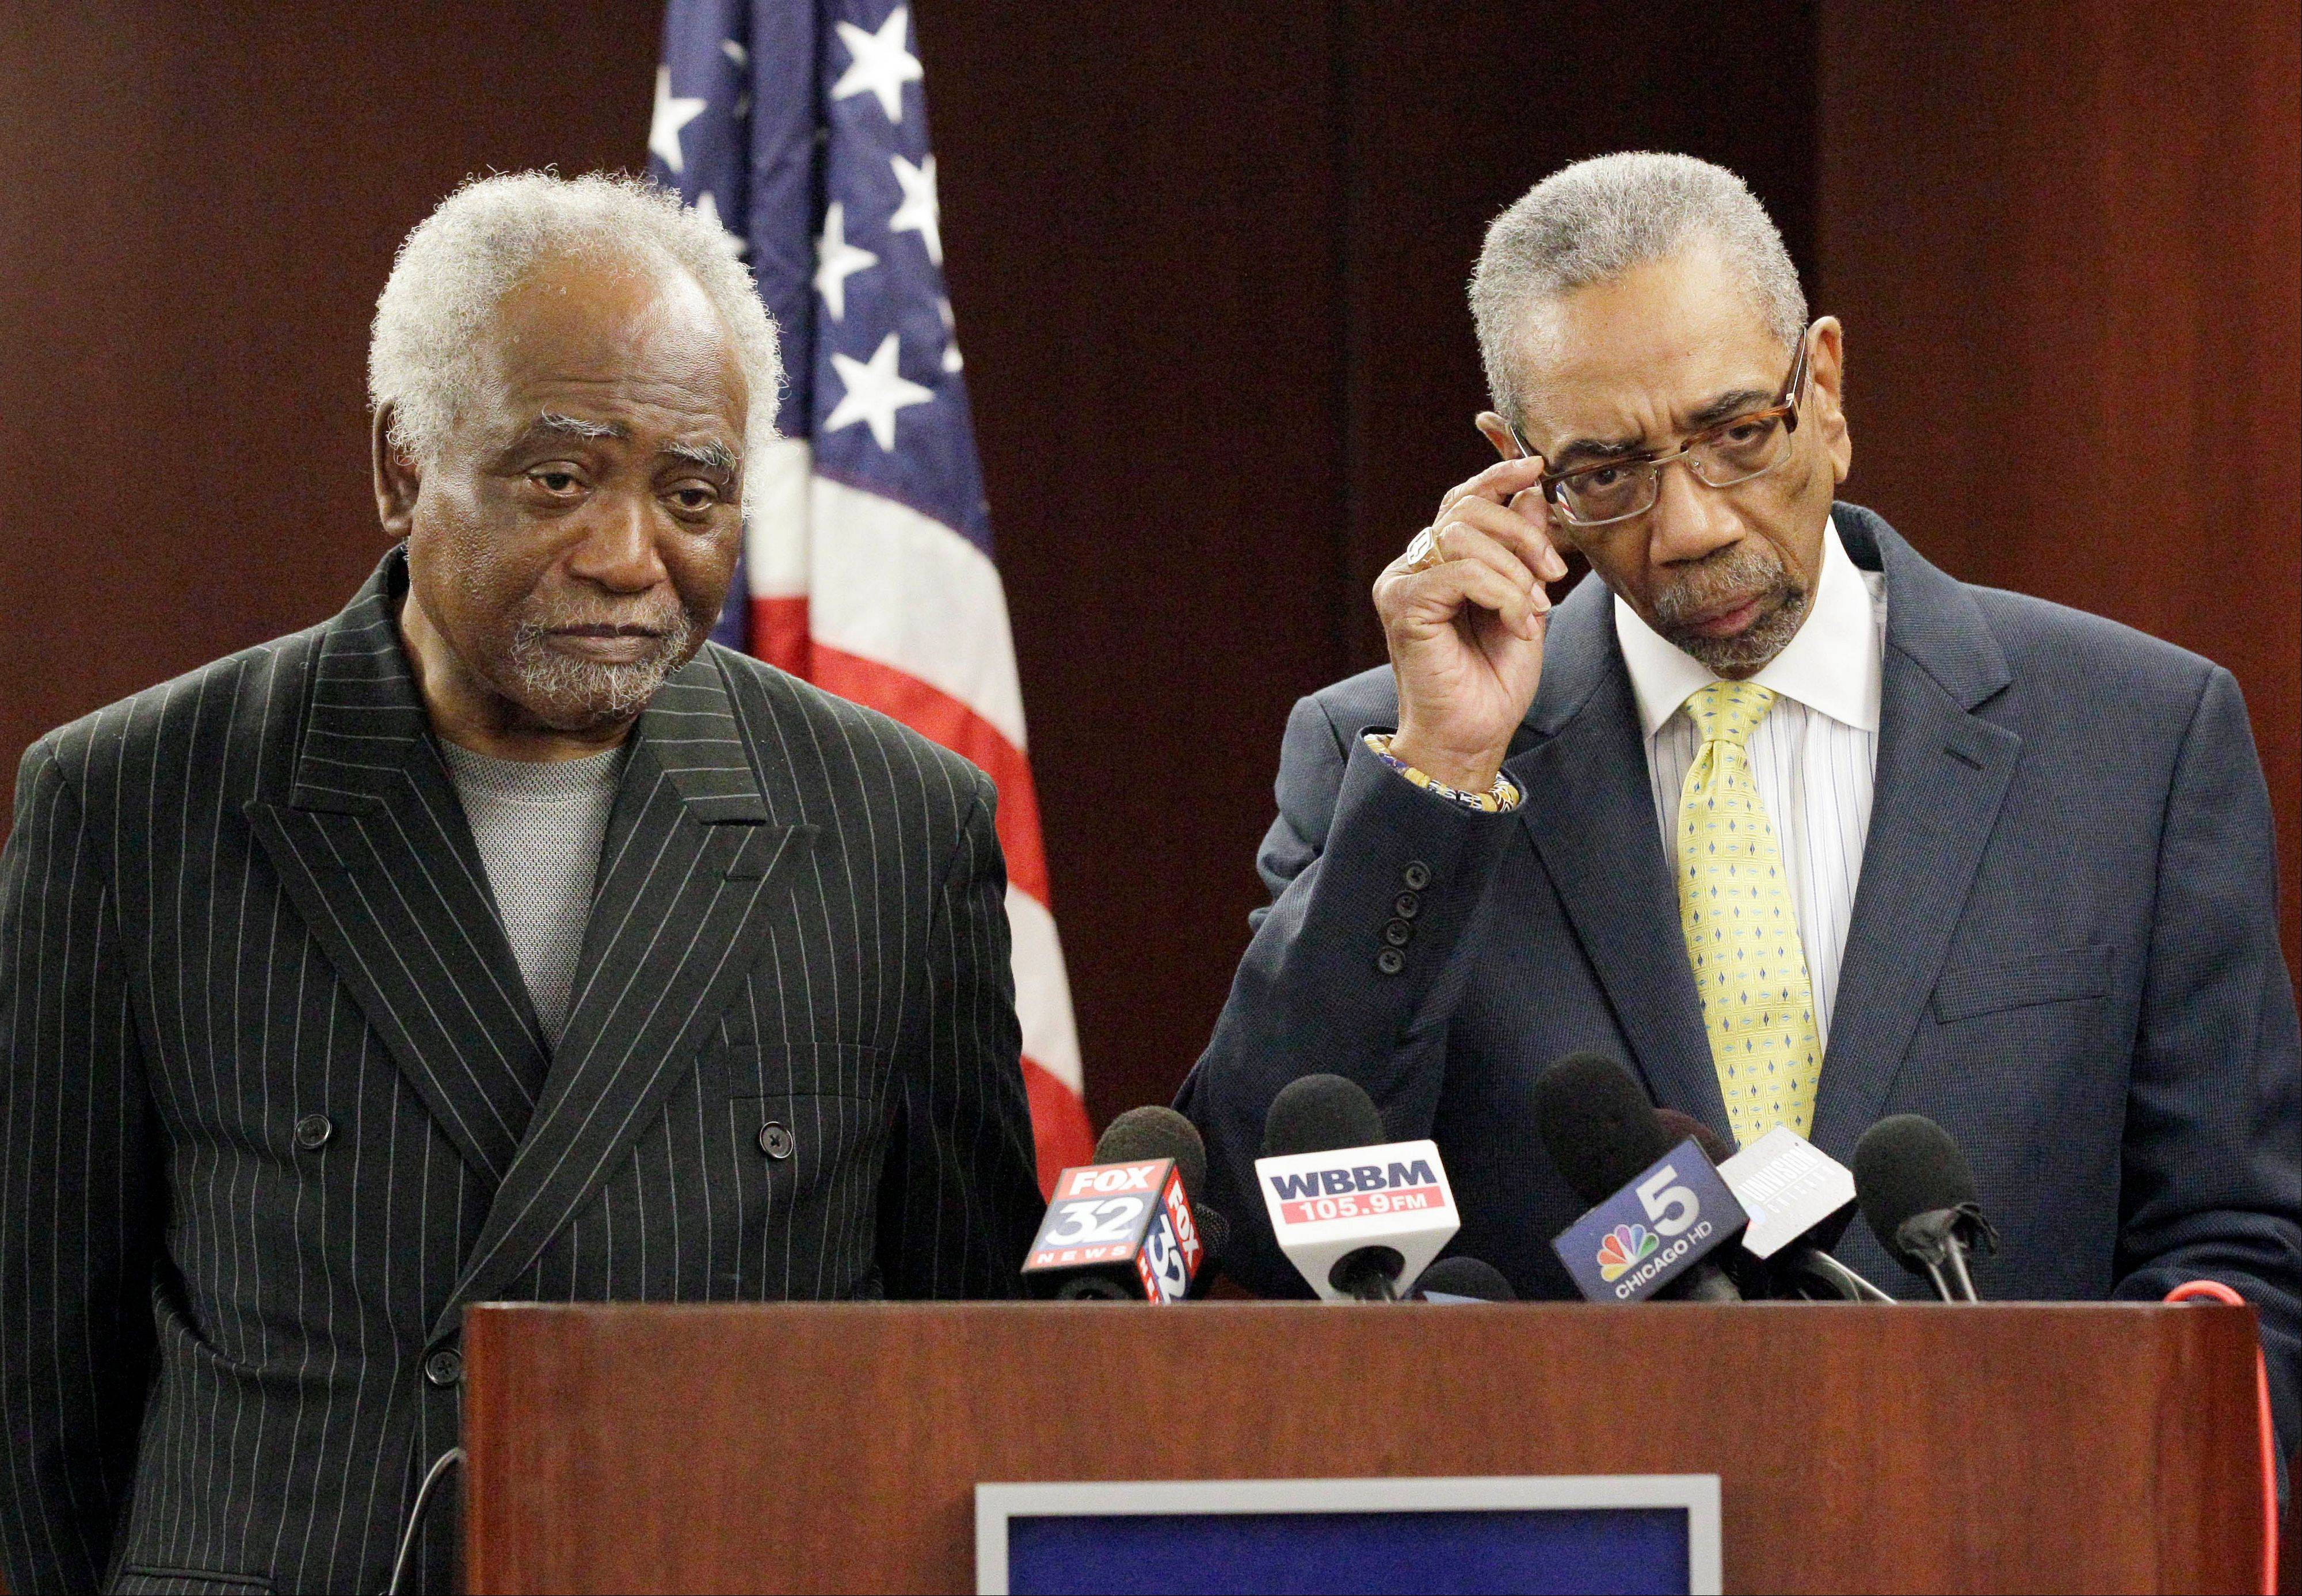 Rep. Bobby Rush, right, and Rep. Danny Davis listen to a question at a news conference in Chicago on Wednesday. Rep. Jesse Jackson Jr., son of a civil rights icon whose rising star aspirations and work as an effective local leader became engulfed by personal and ethical issues in recent years, quietly resigned from Congress Wednesday on an ominous tone.